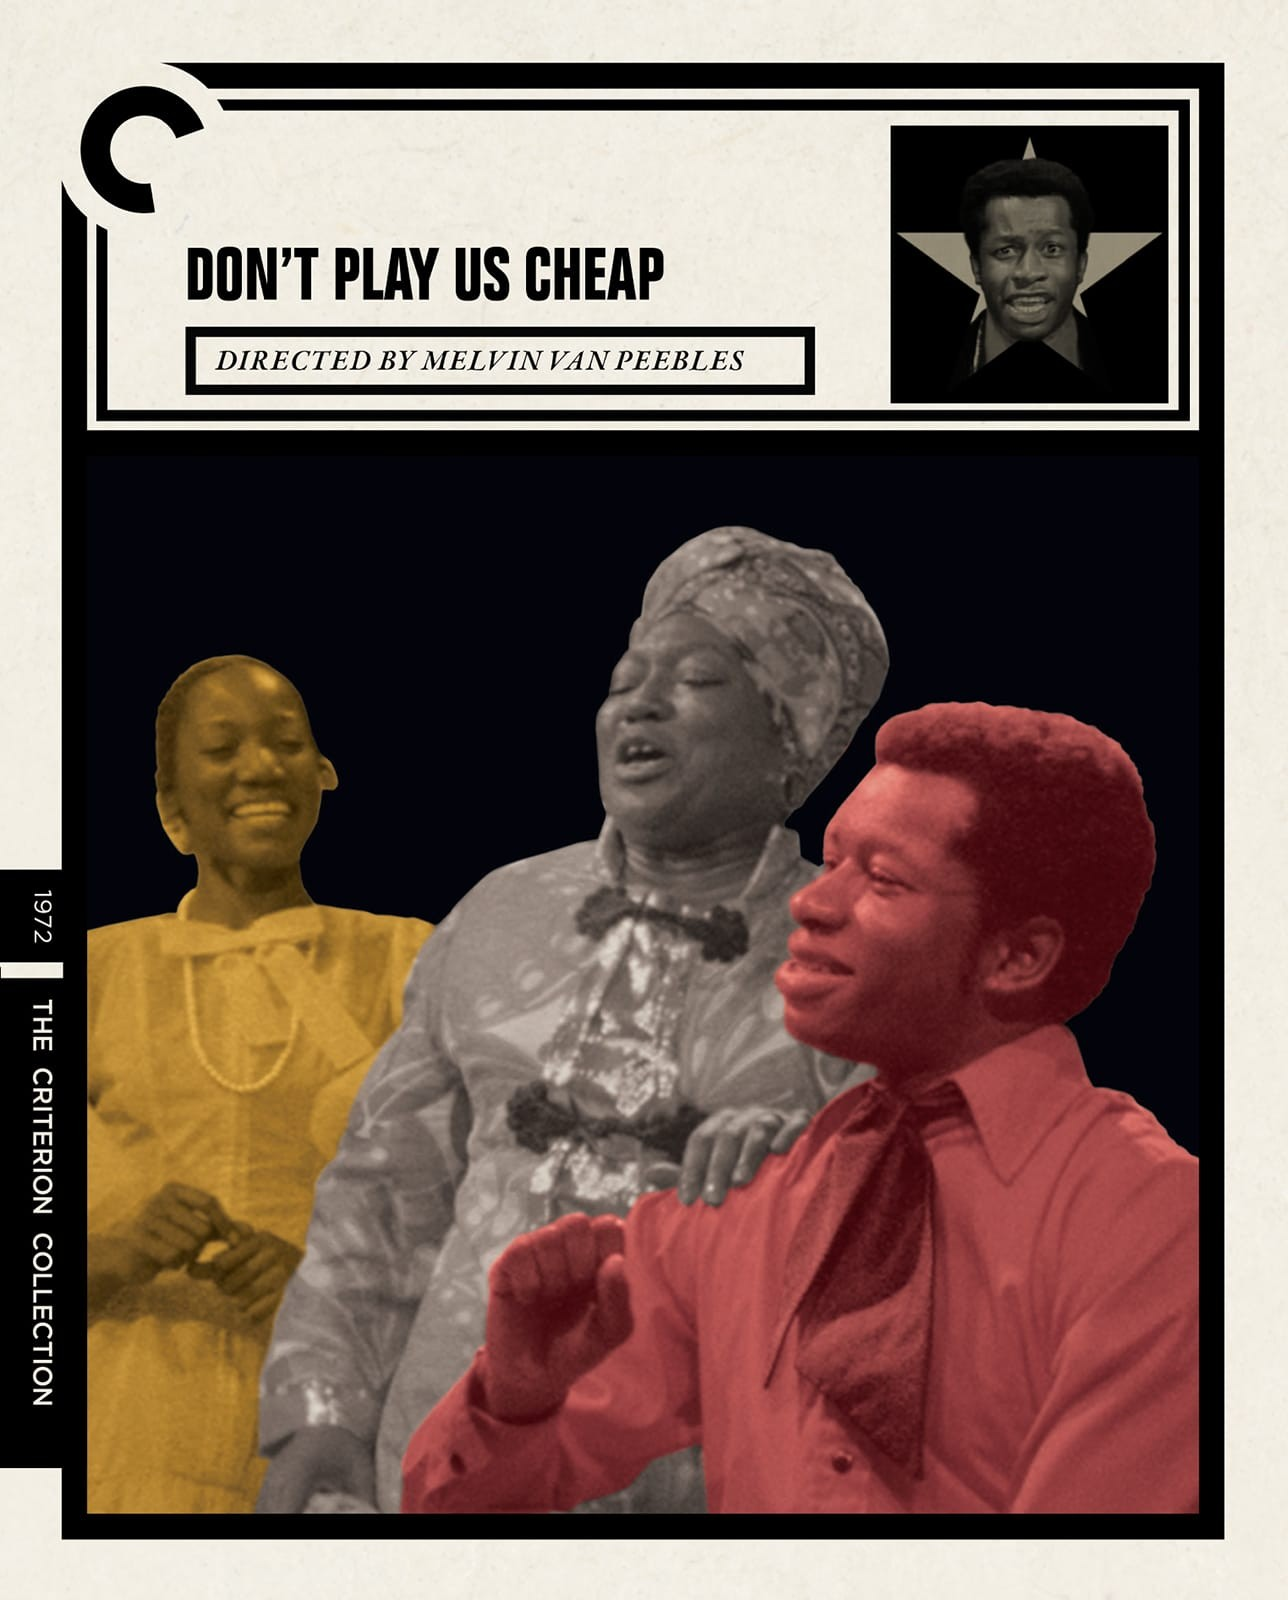 Don't Play Us Cheap (1972) | The Criterion Collection